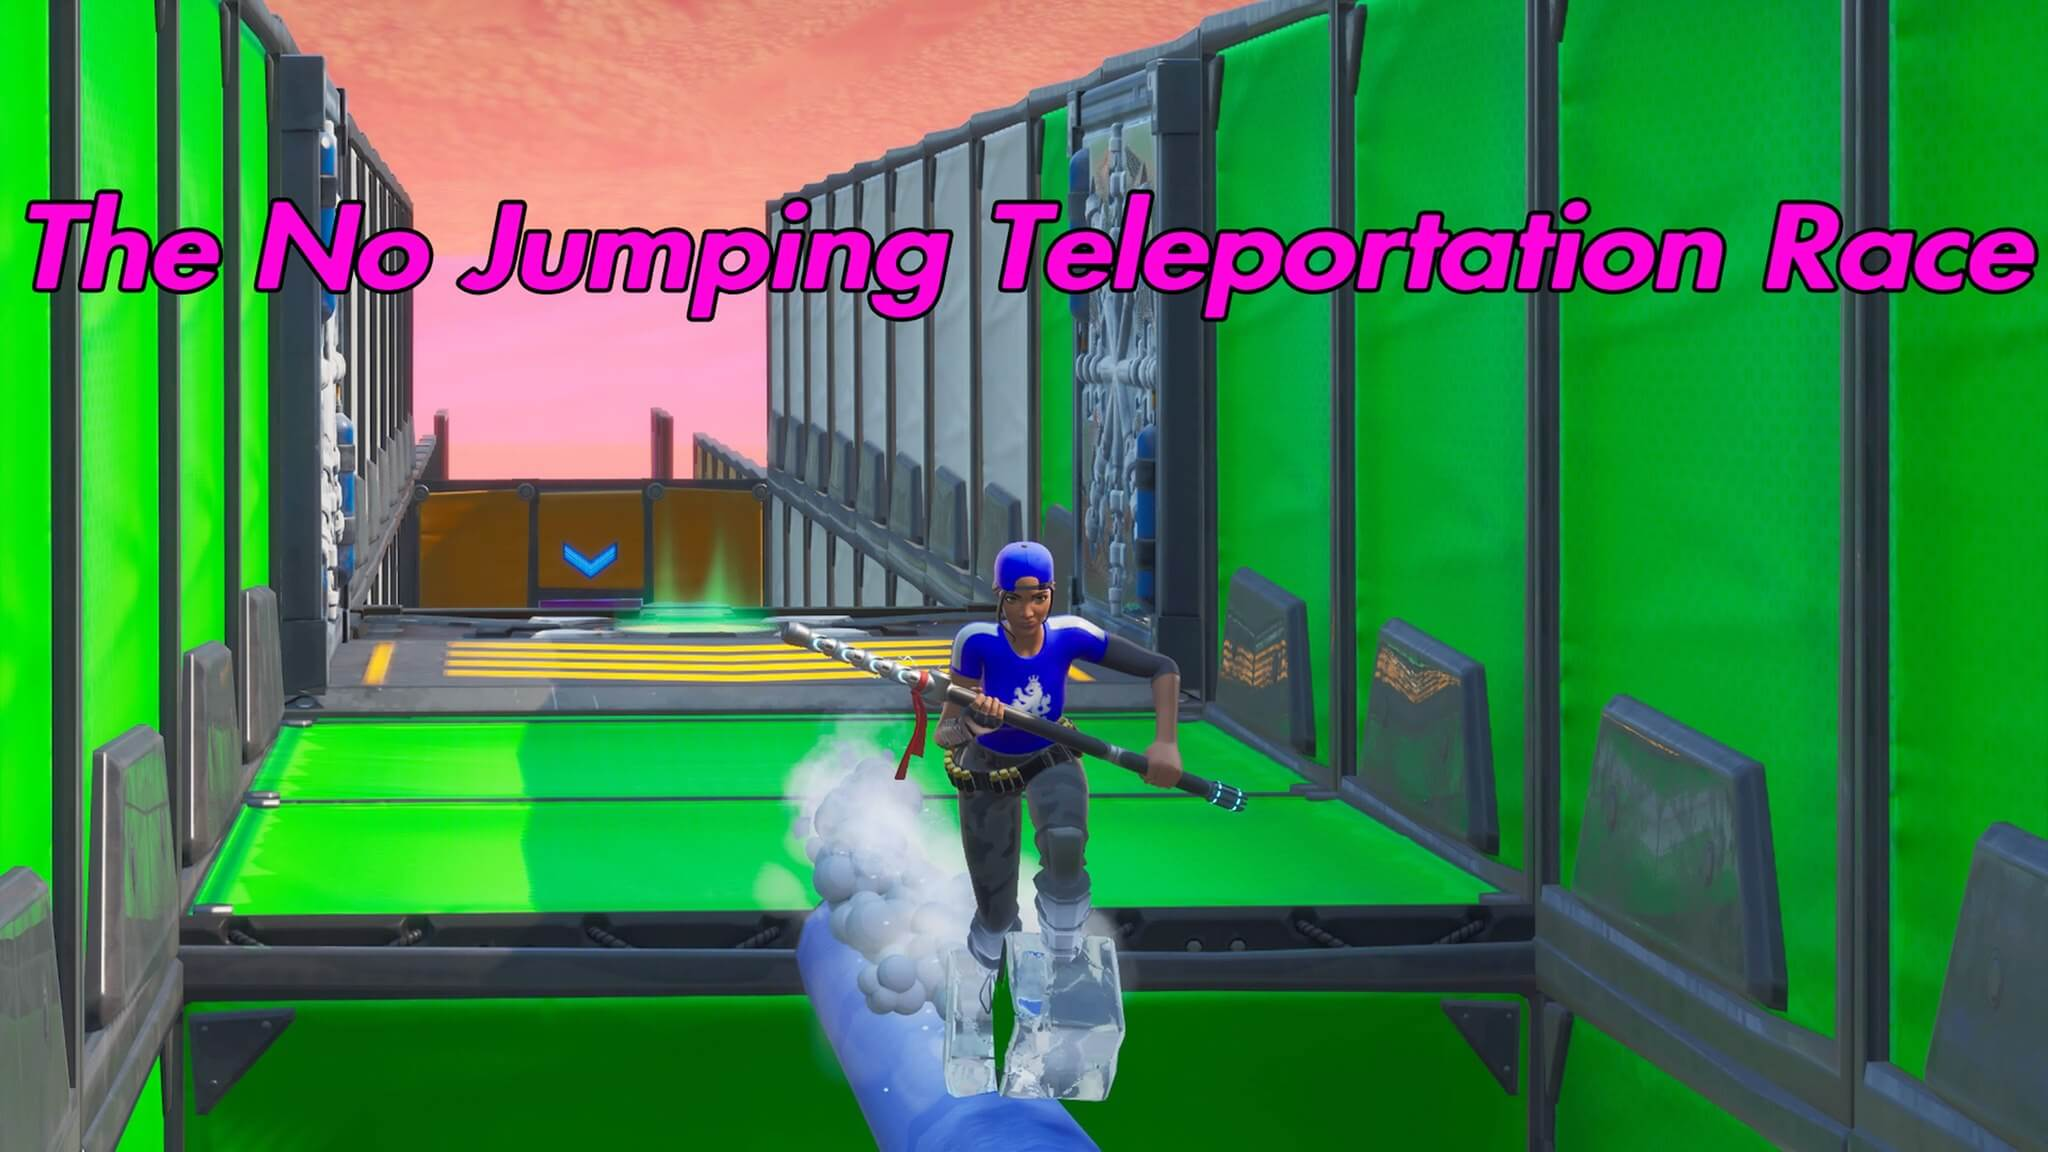 NO JUMPING TELEPORTATION RACE